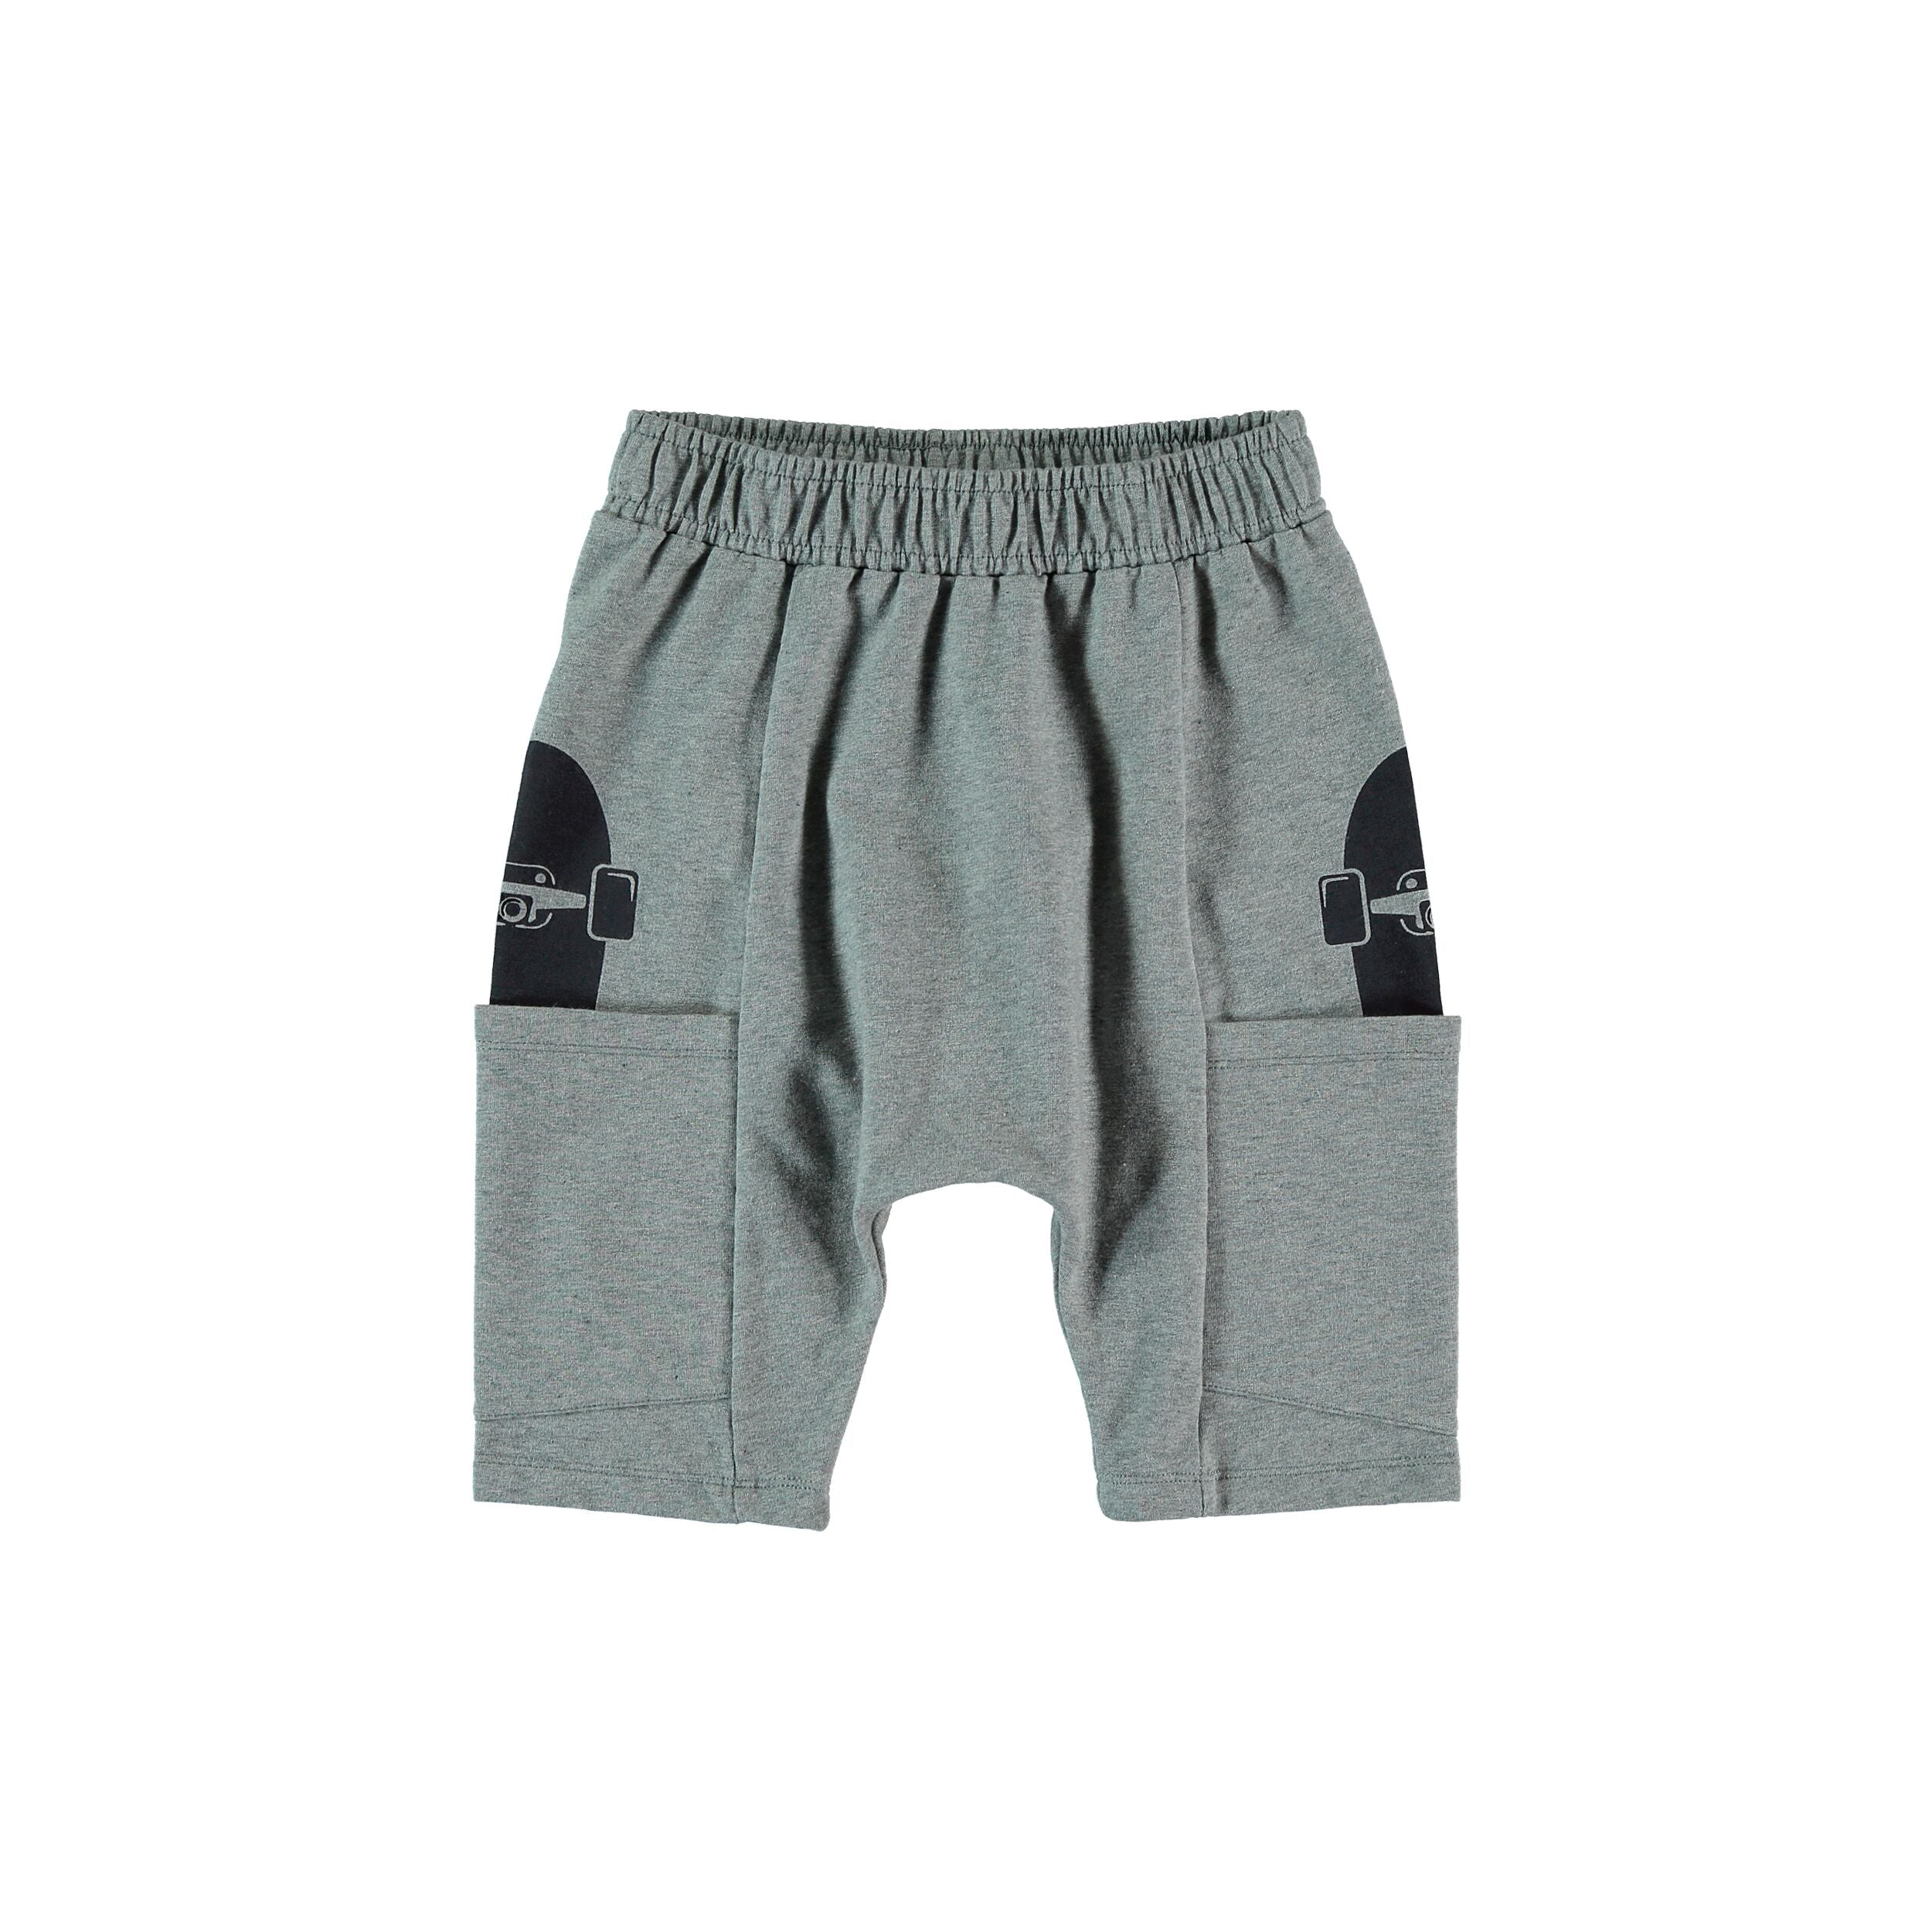 Designer Kids Fashion at Bloom Moda Online Children's Boutique - Yporqué Skate Cargo Shorts,  Shorts